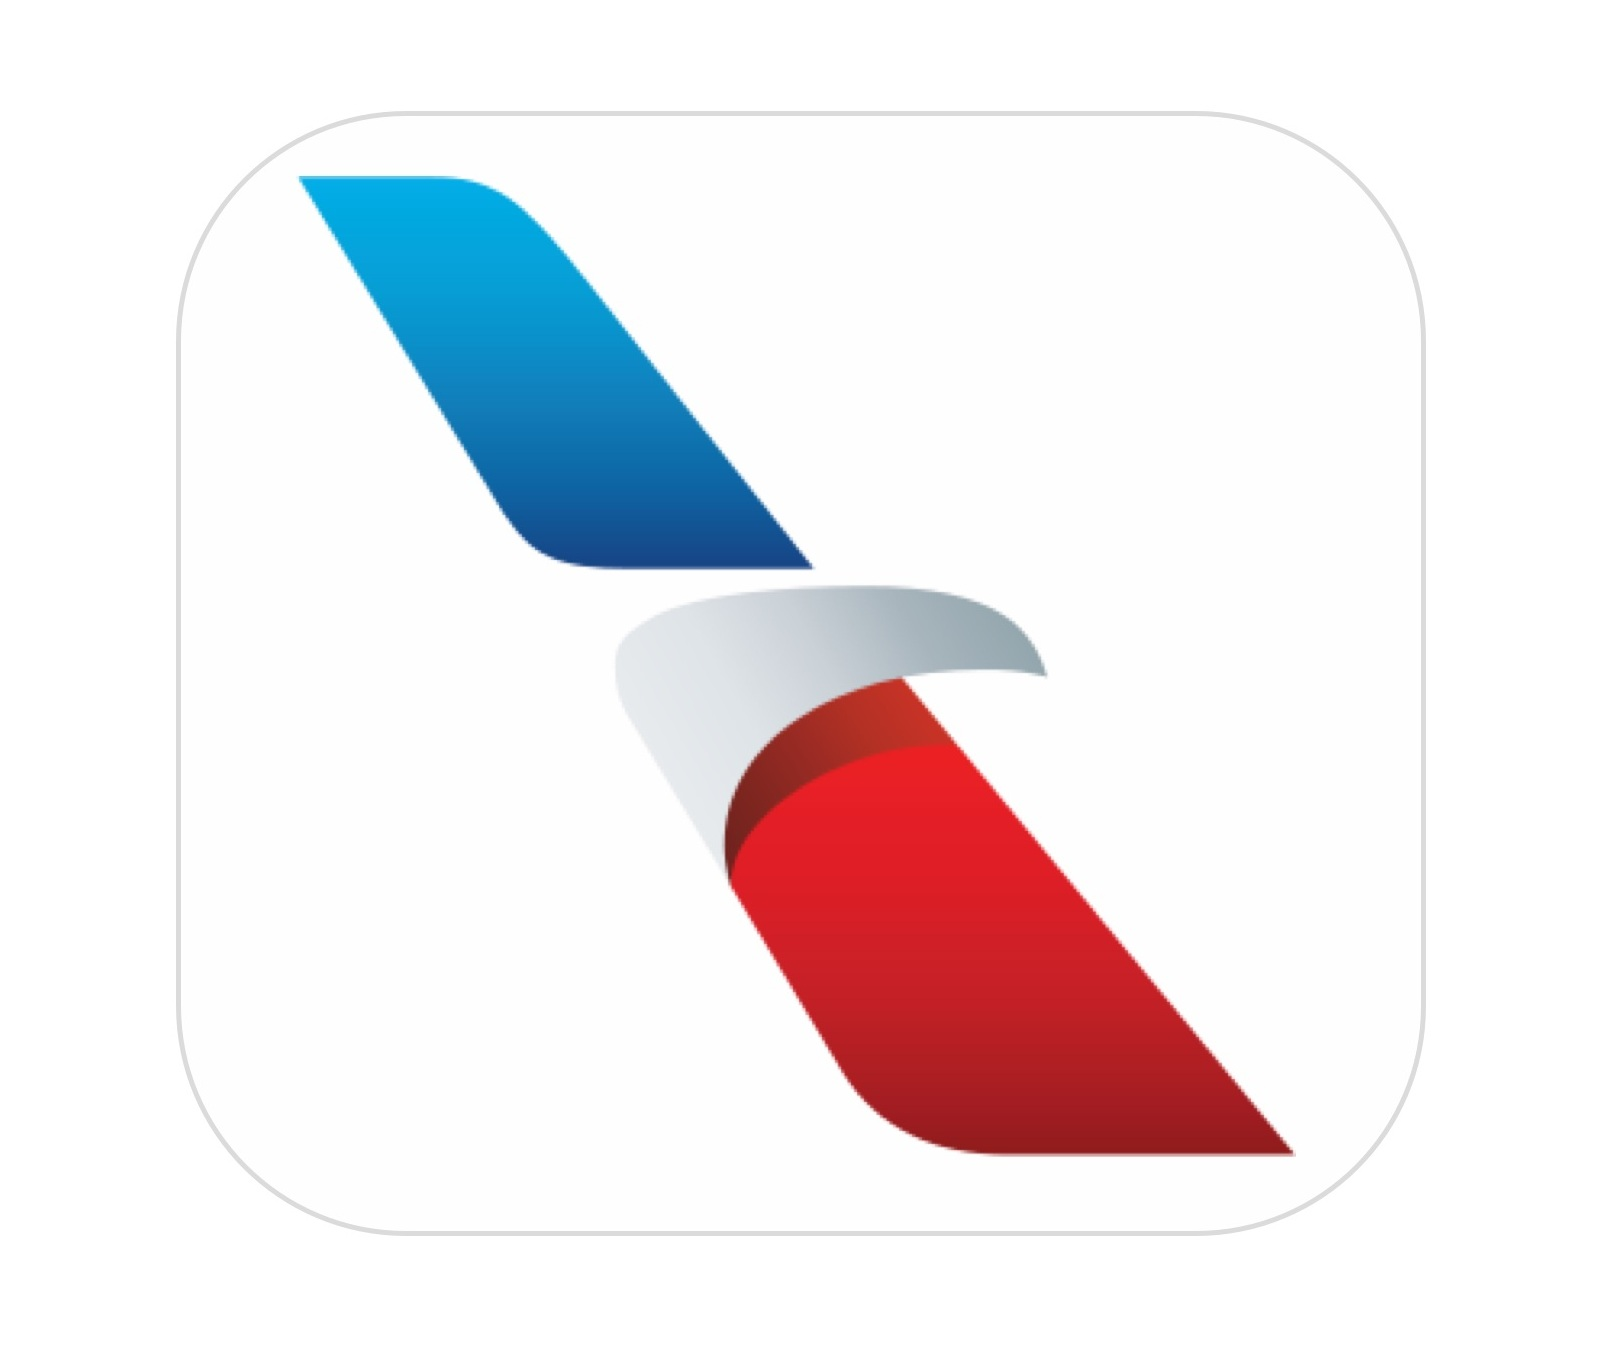 AMERICAN AIRLINES - airline app re-design project